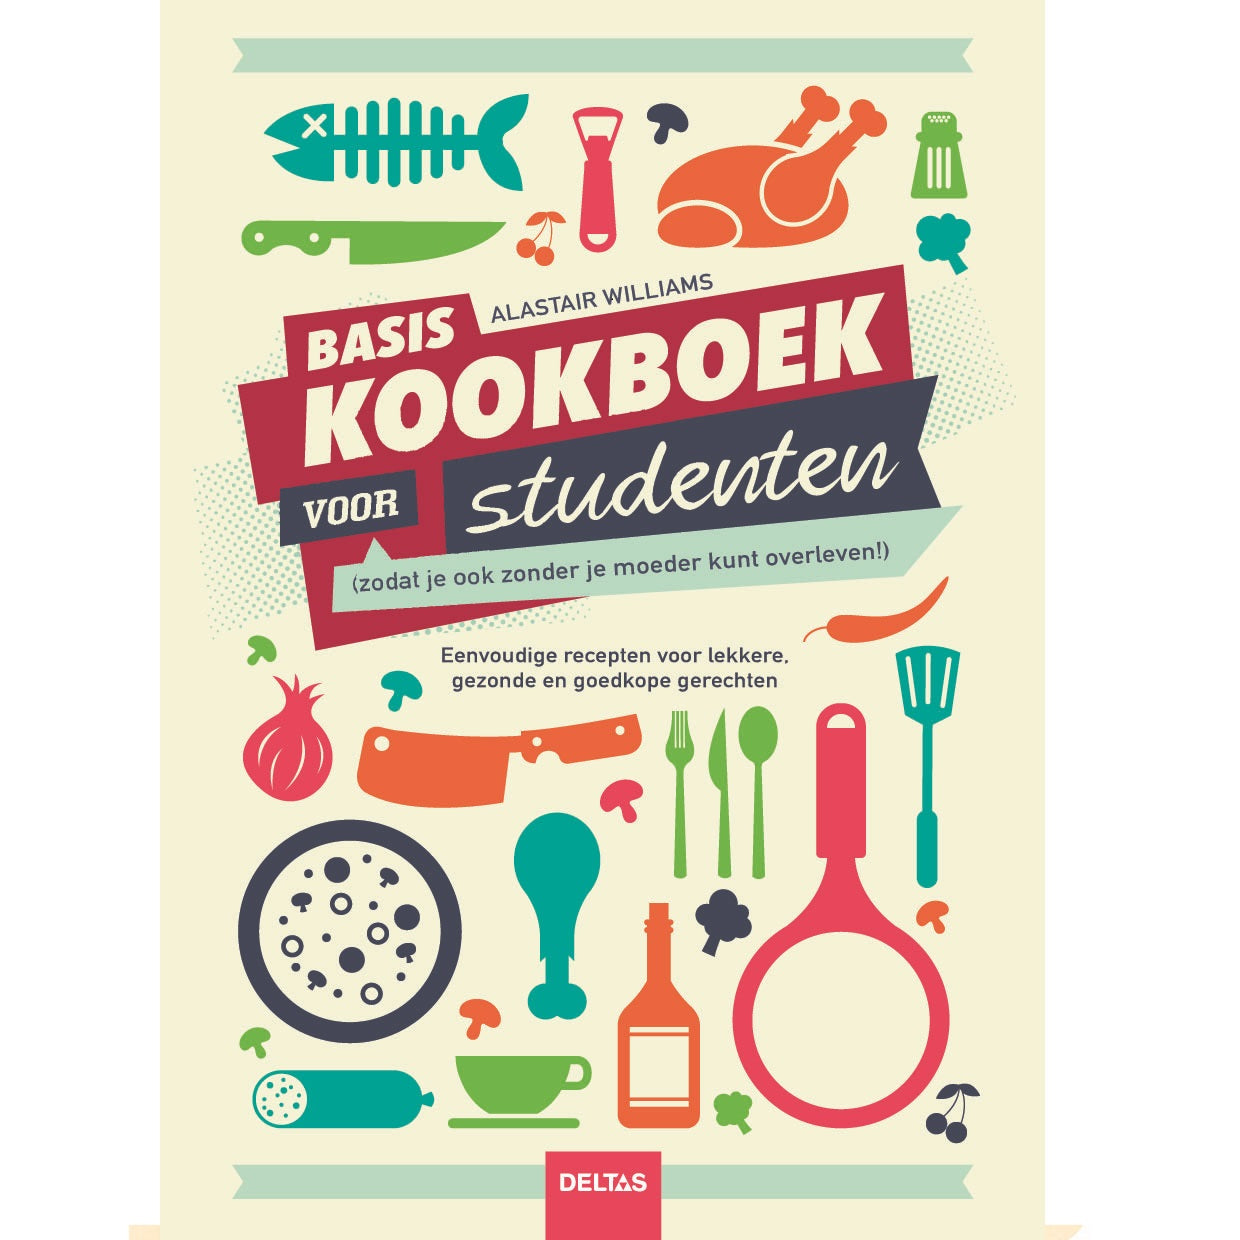 Basis kookboek voor studenten